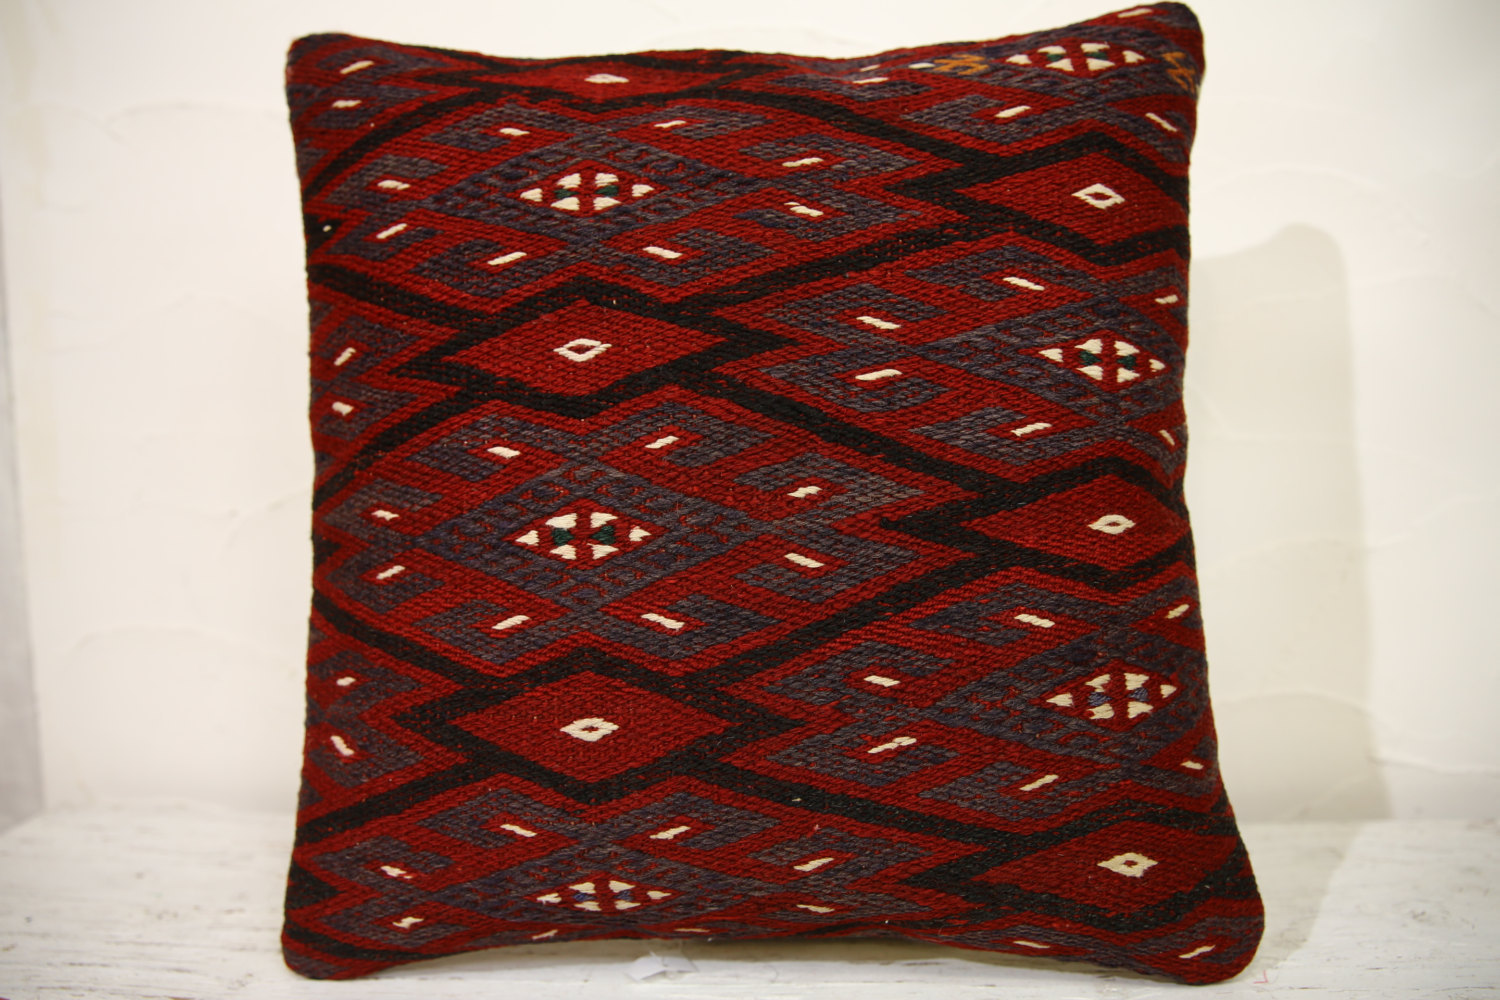 Kilim Pillows | 16x16 | turkish pillows | 973 | Accent Pillows,Decorative Pillow